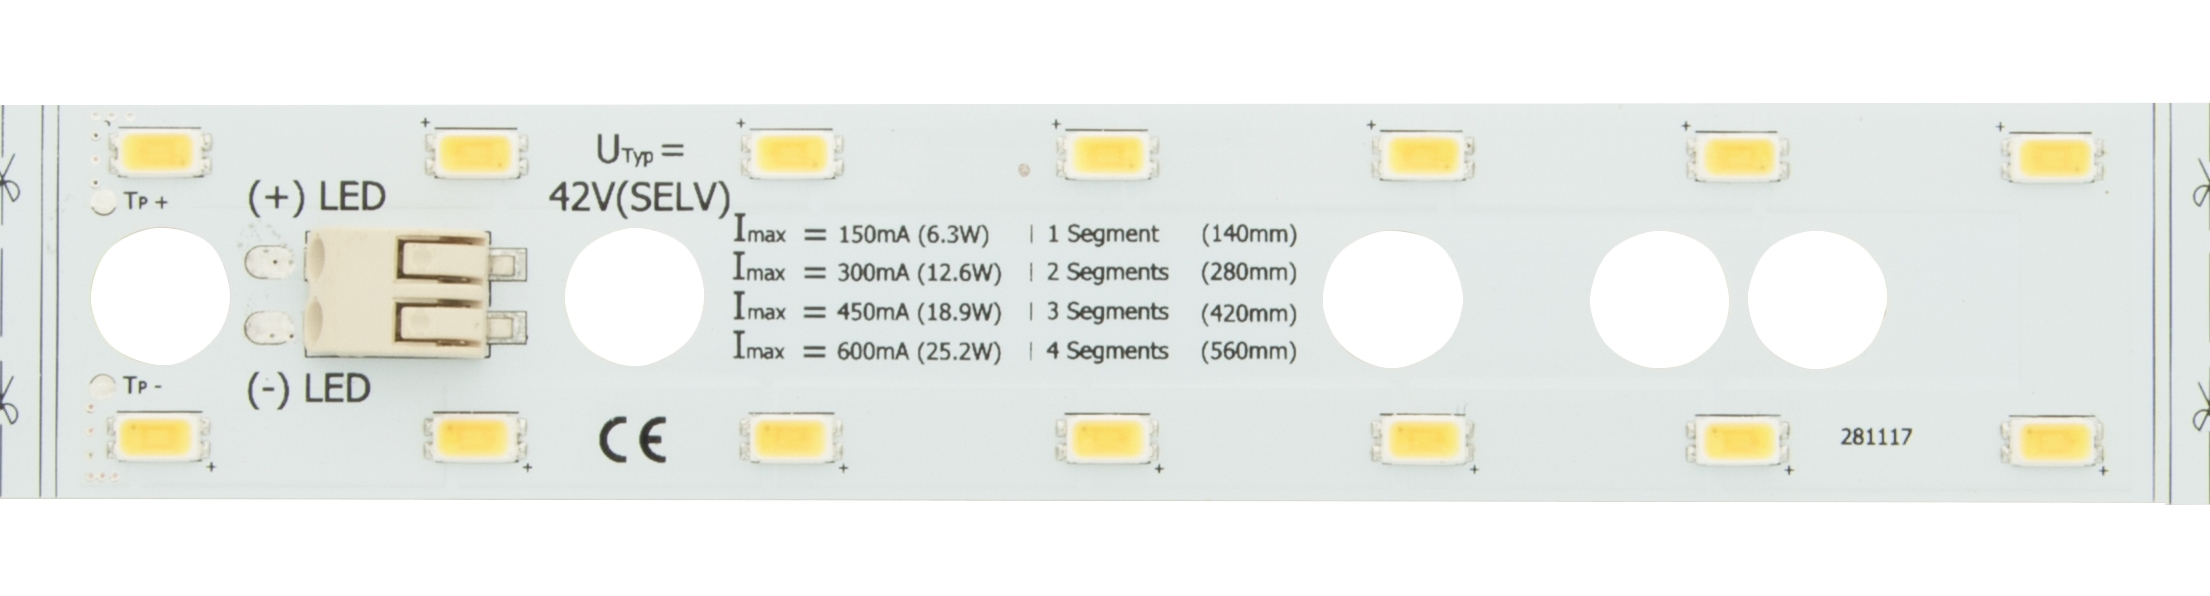 1 Stk LED Platinen Modul 25 WW (Warm Weiss) - IP20, CRI/RA 90+ LIPM002930